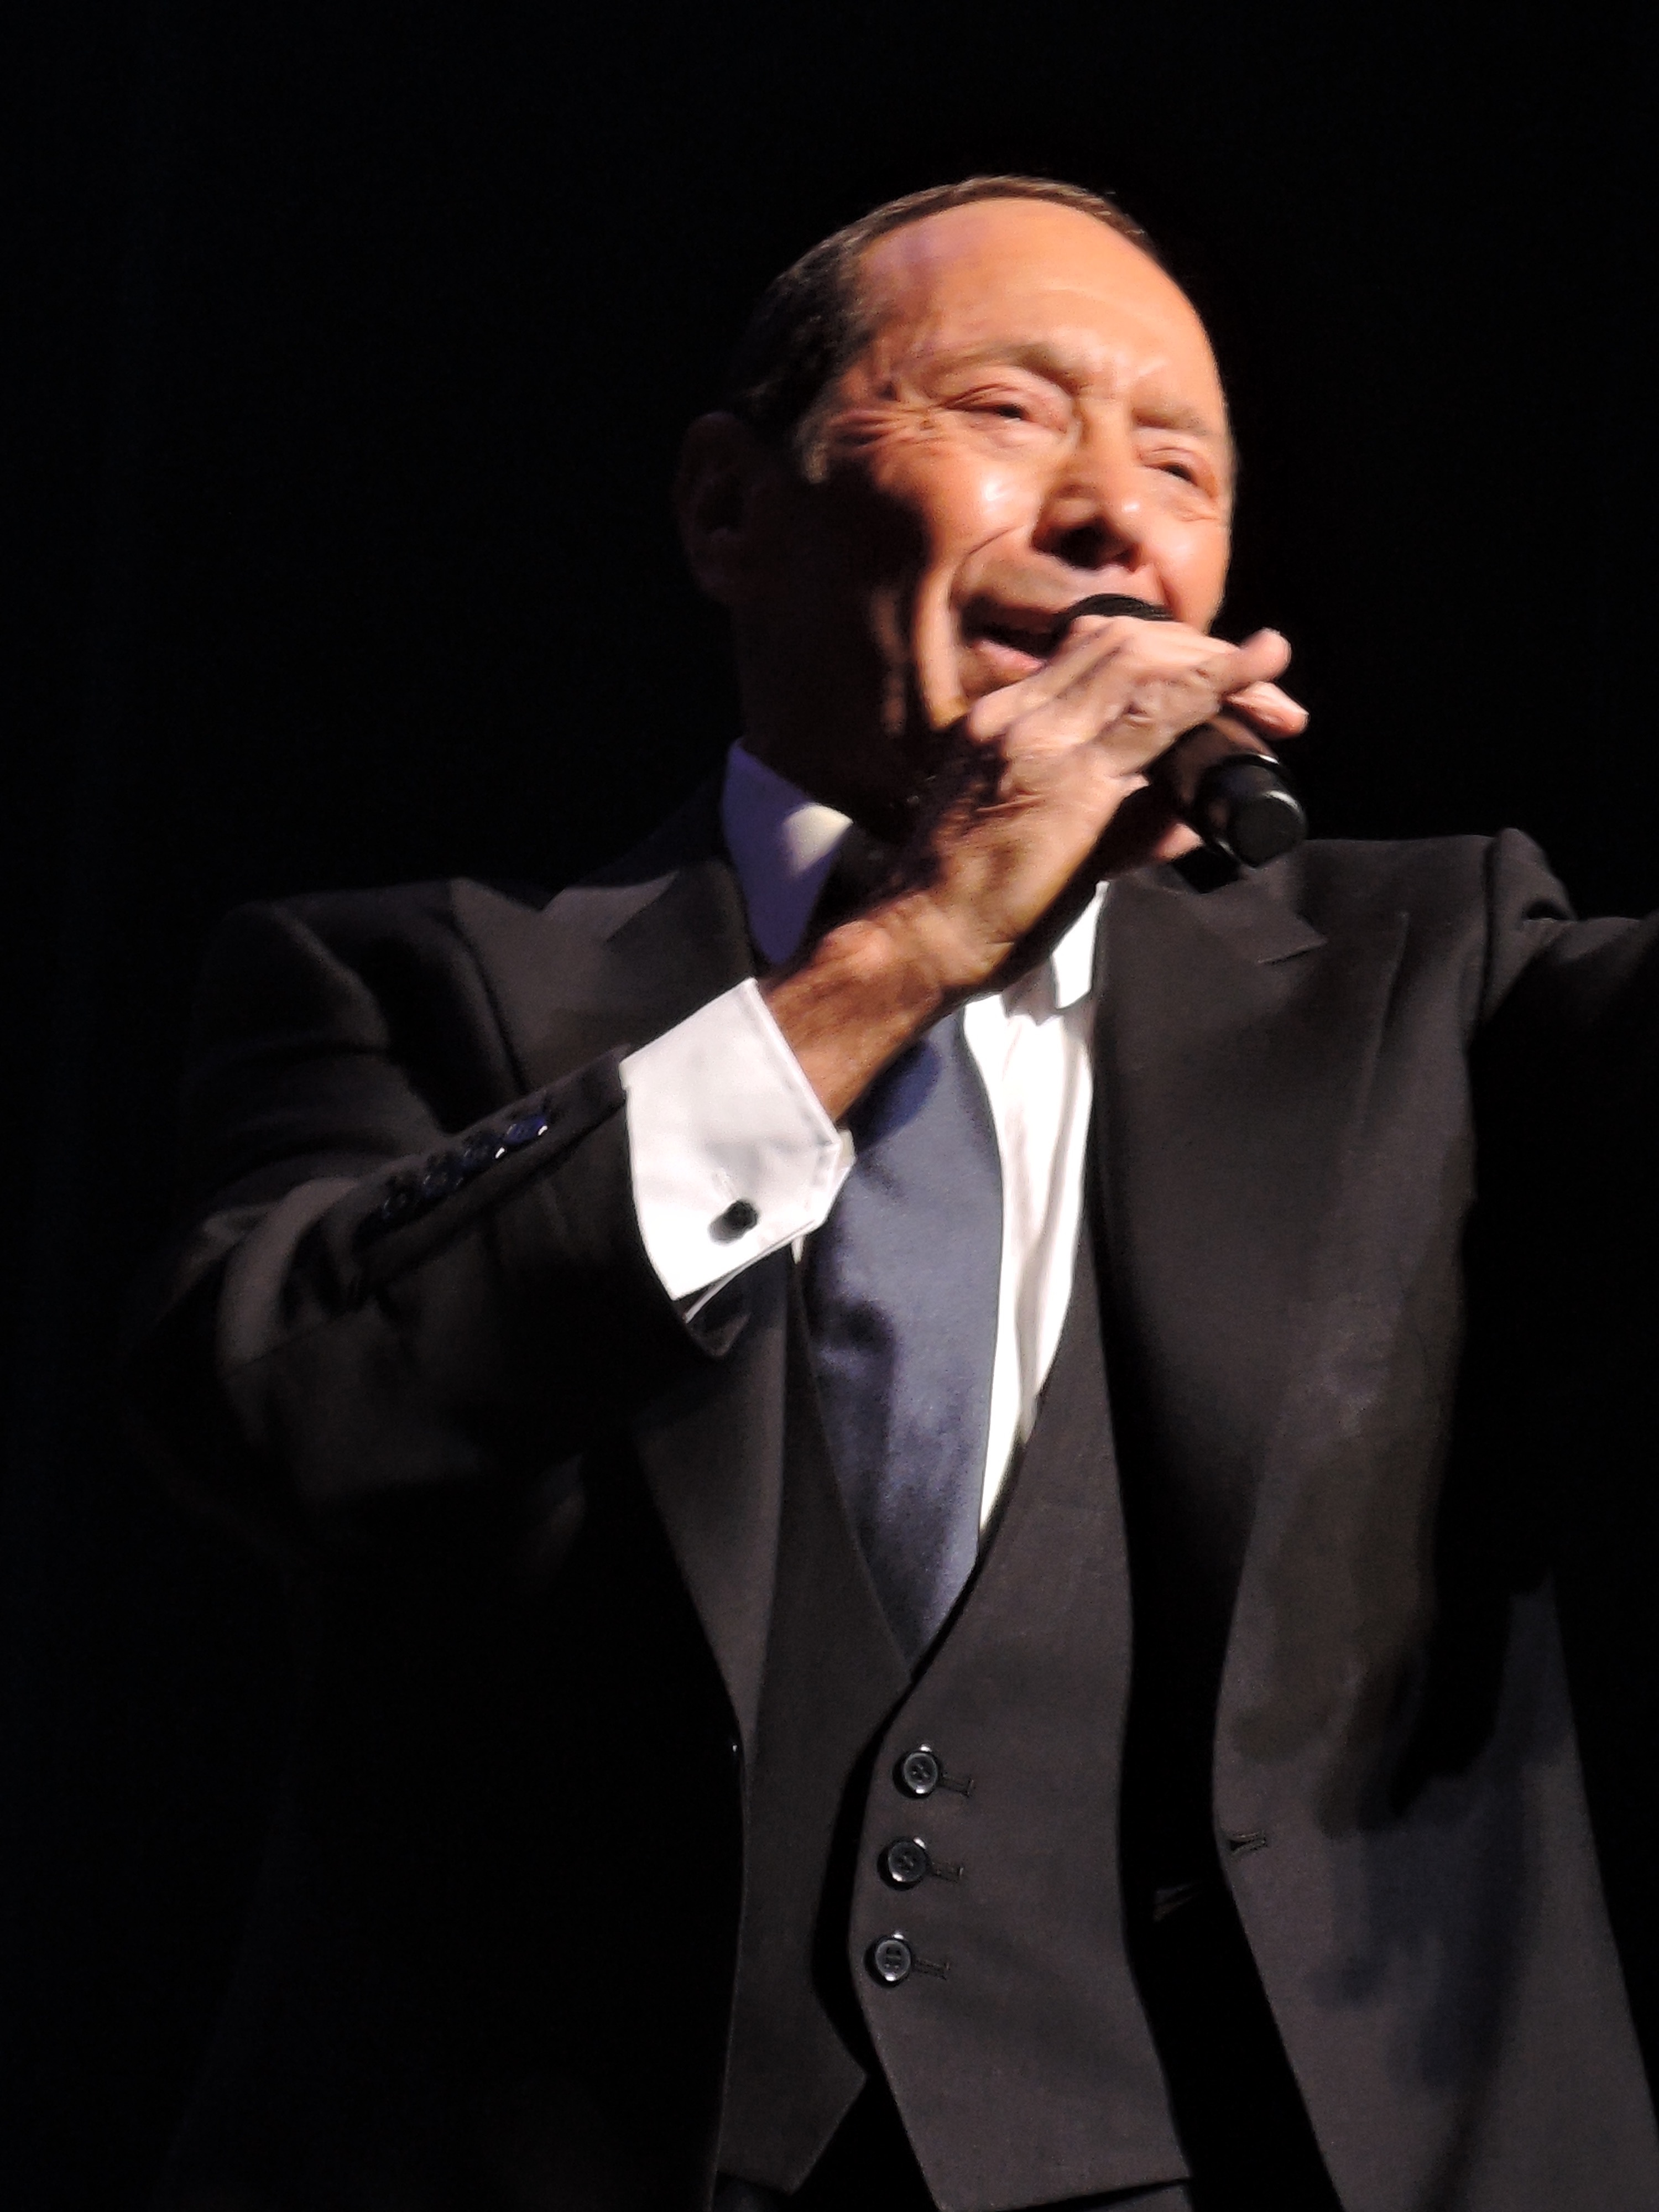 Paul Anka Capable And Comfortable Being The Keeper Of The